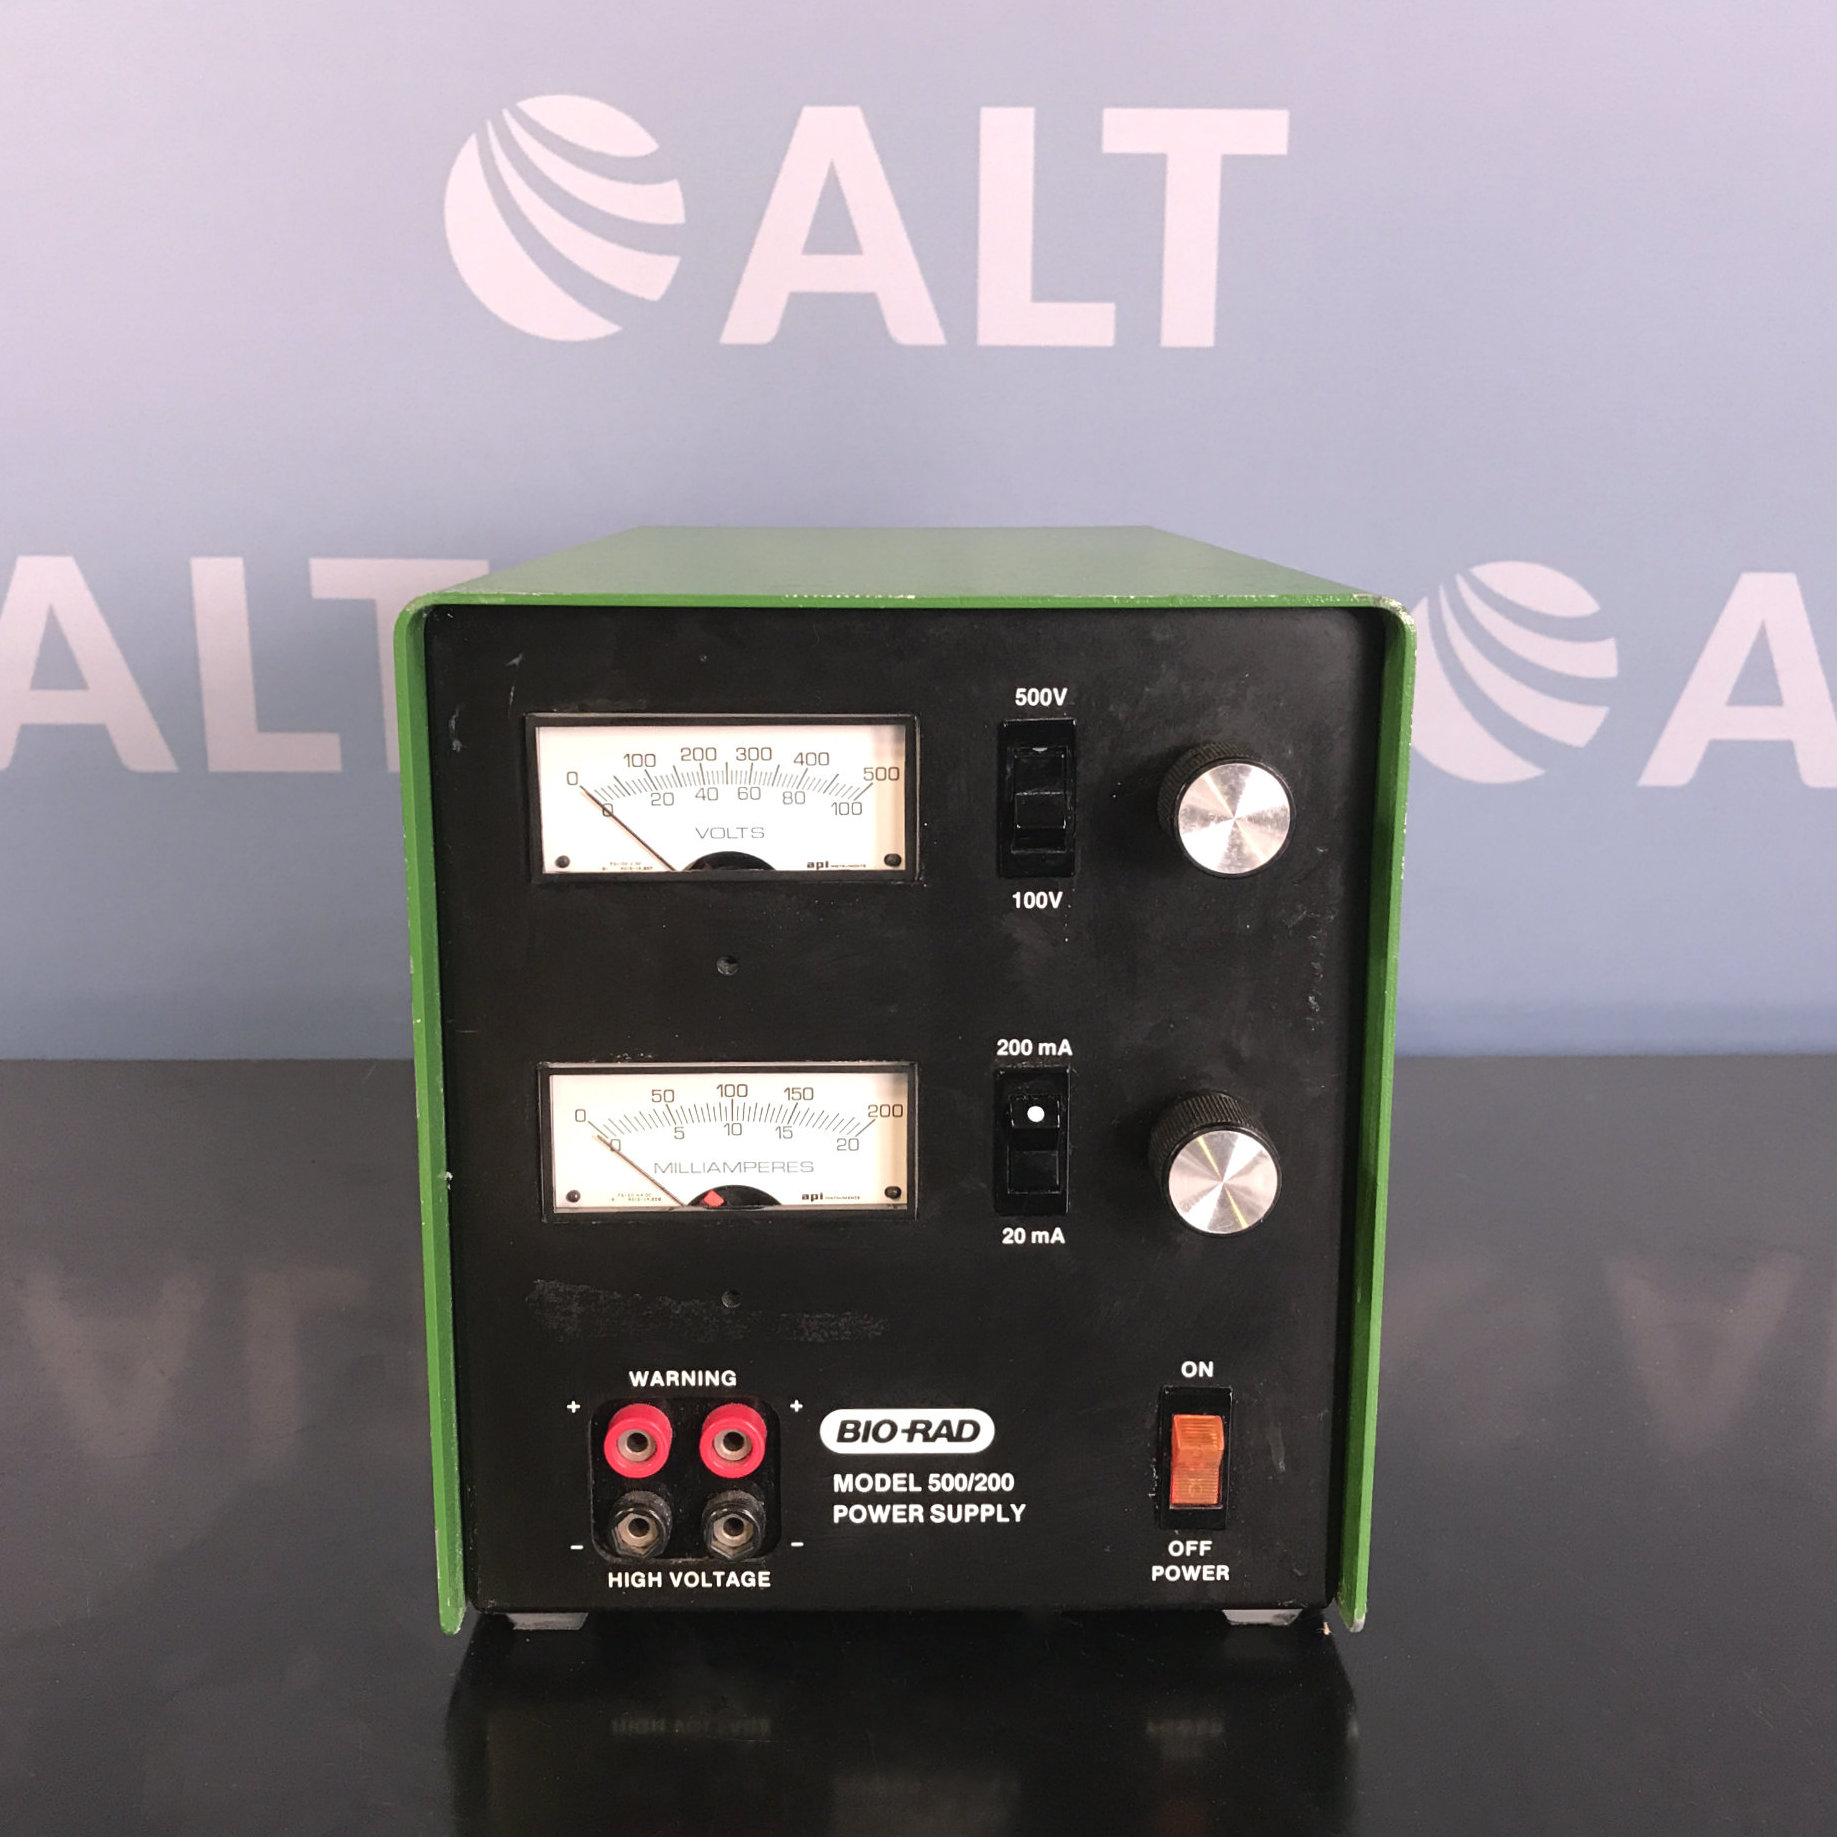 Bio-Rad Model 500/200 Electrophoresis Power Supply Image